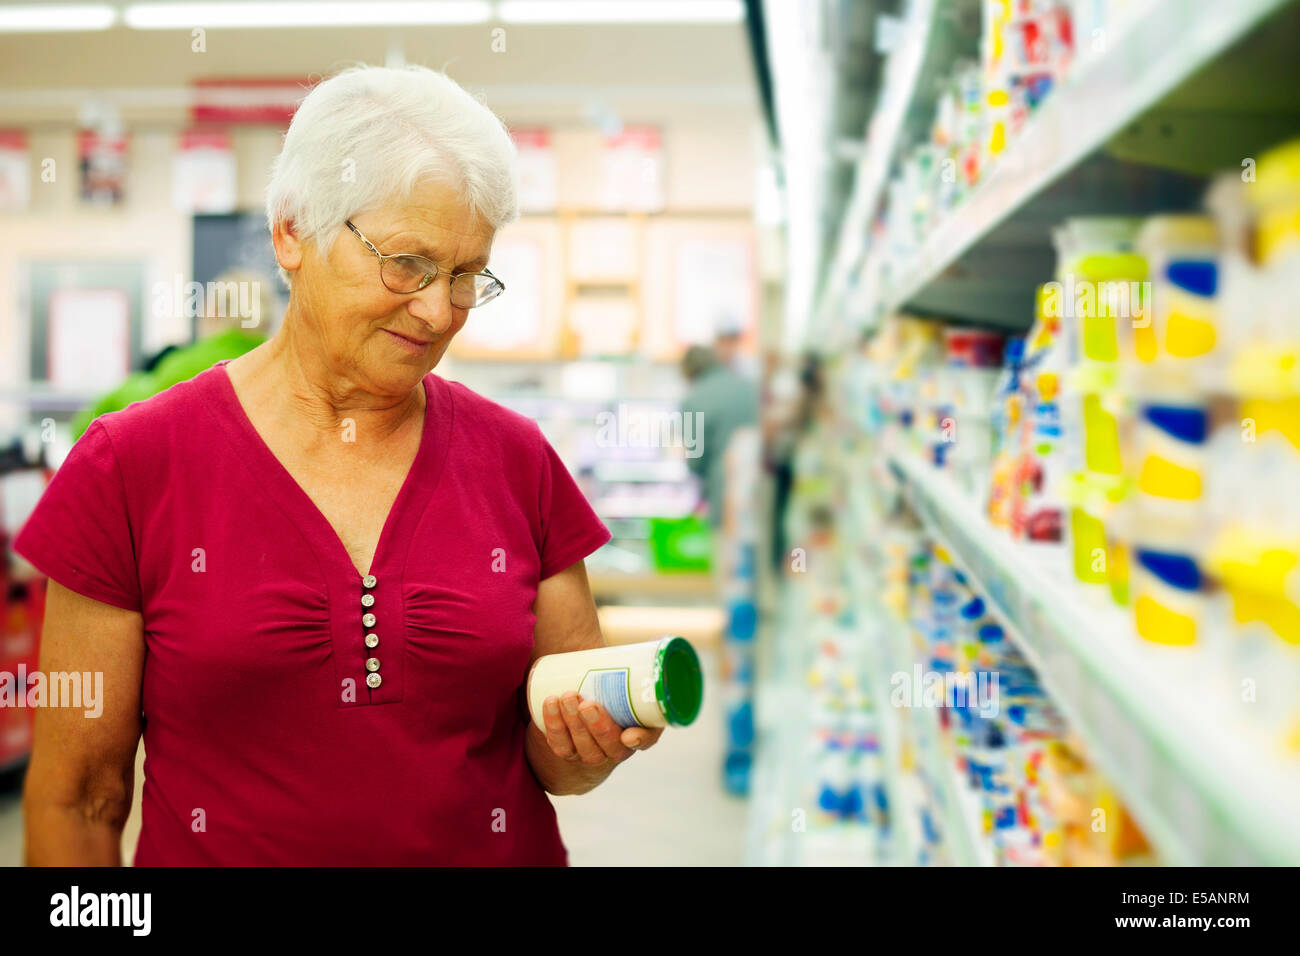 Senior woman checking label on jar Debica, Poland - Stock Image